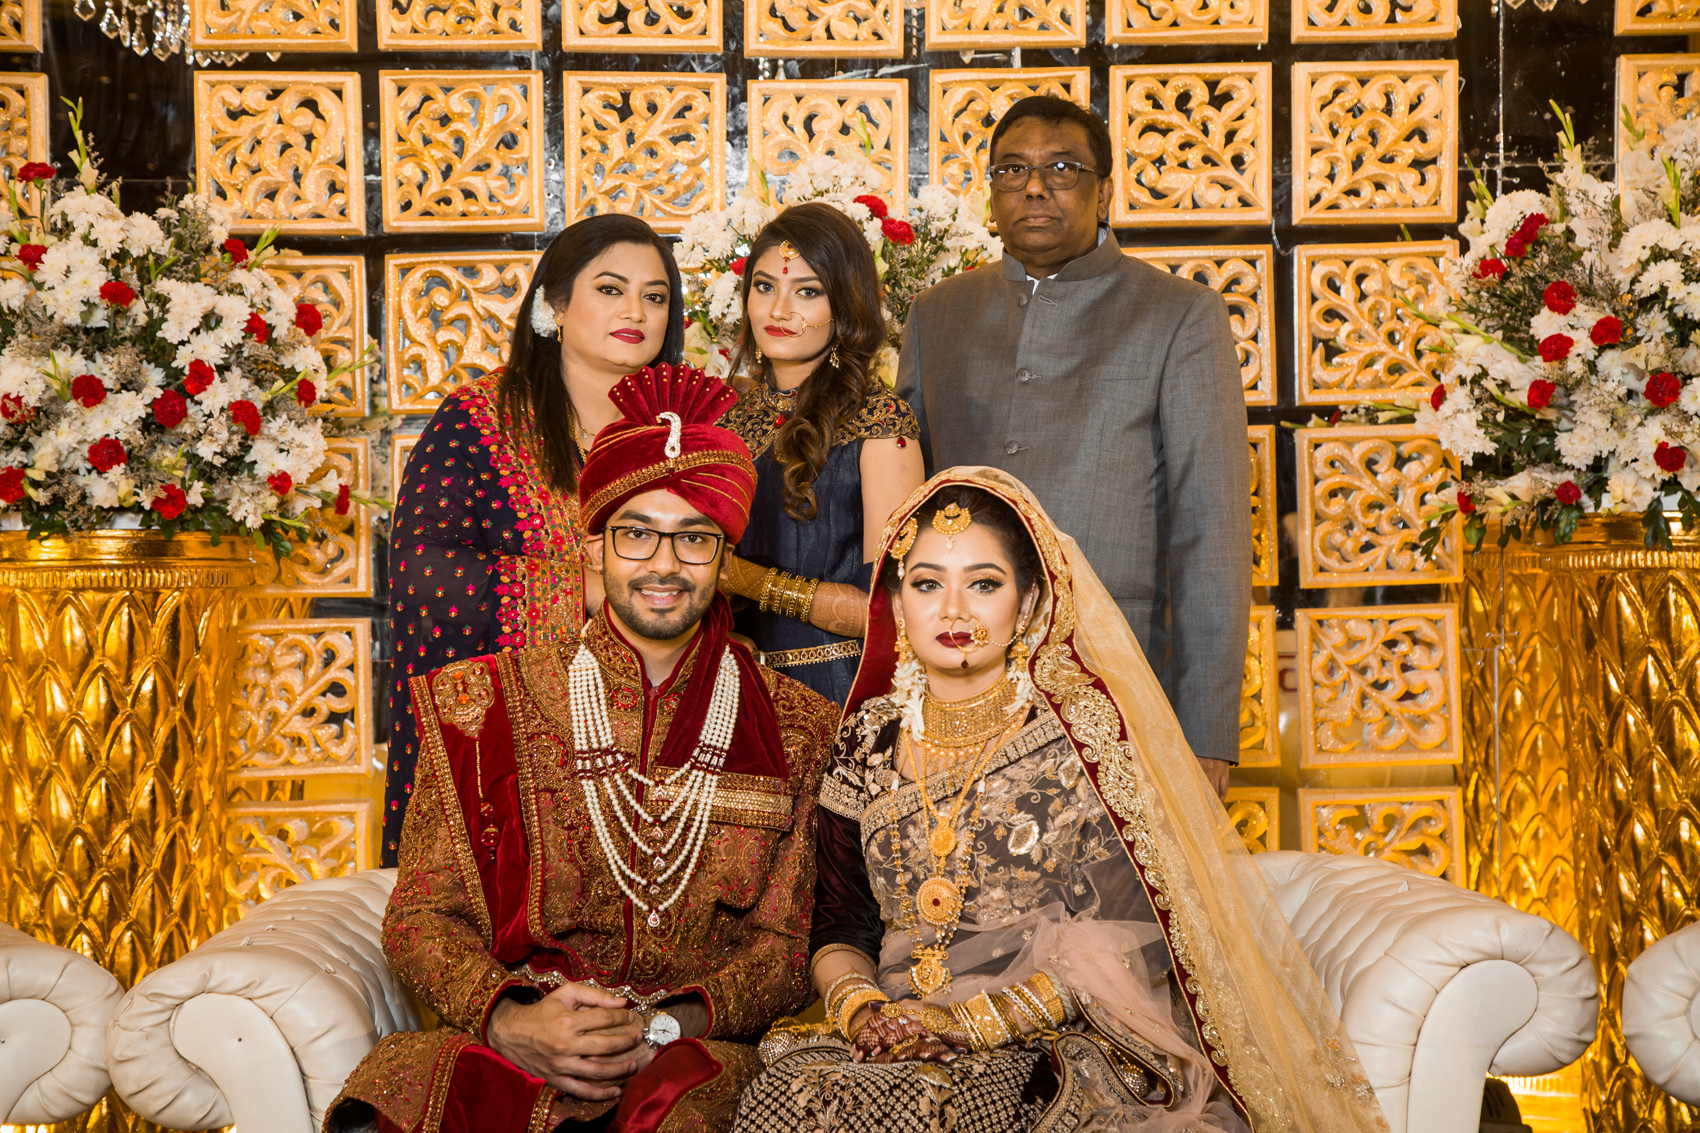 Ramiz and his bride Faeqa Farooq pose on their wedding day with members of Ramiz's family. (Back row, left to right) Ramiz's mother Mahbuba Parveen, sister Reyan, and his late father Mohammad Liaquat Hossain. The photo was taken in Dhaka, Bangladesh in December 2016.